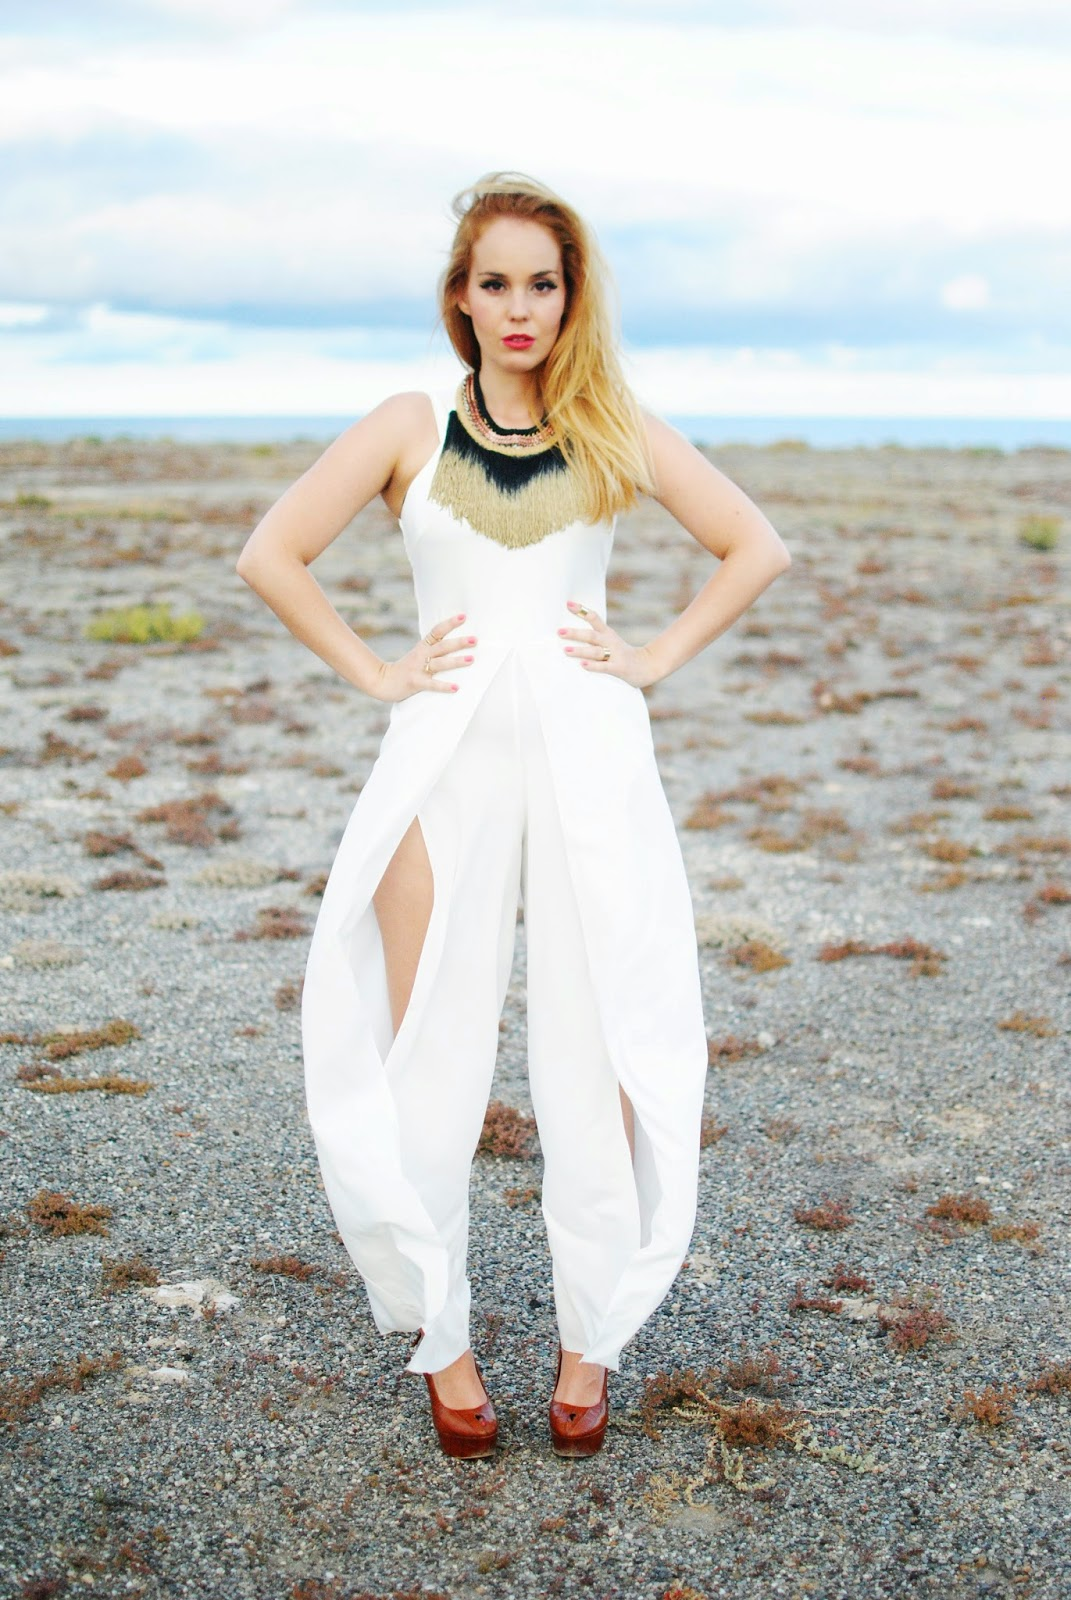 nery hdez, jumpsuits, axparis, total white, adolfo dominguez, fringes necklace, san edelman